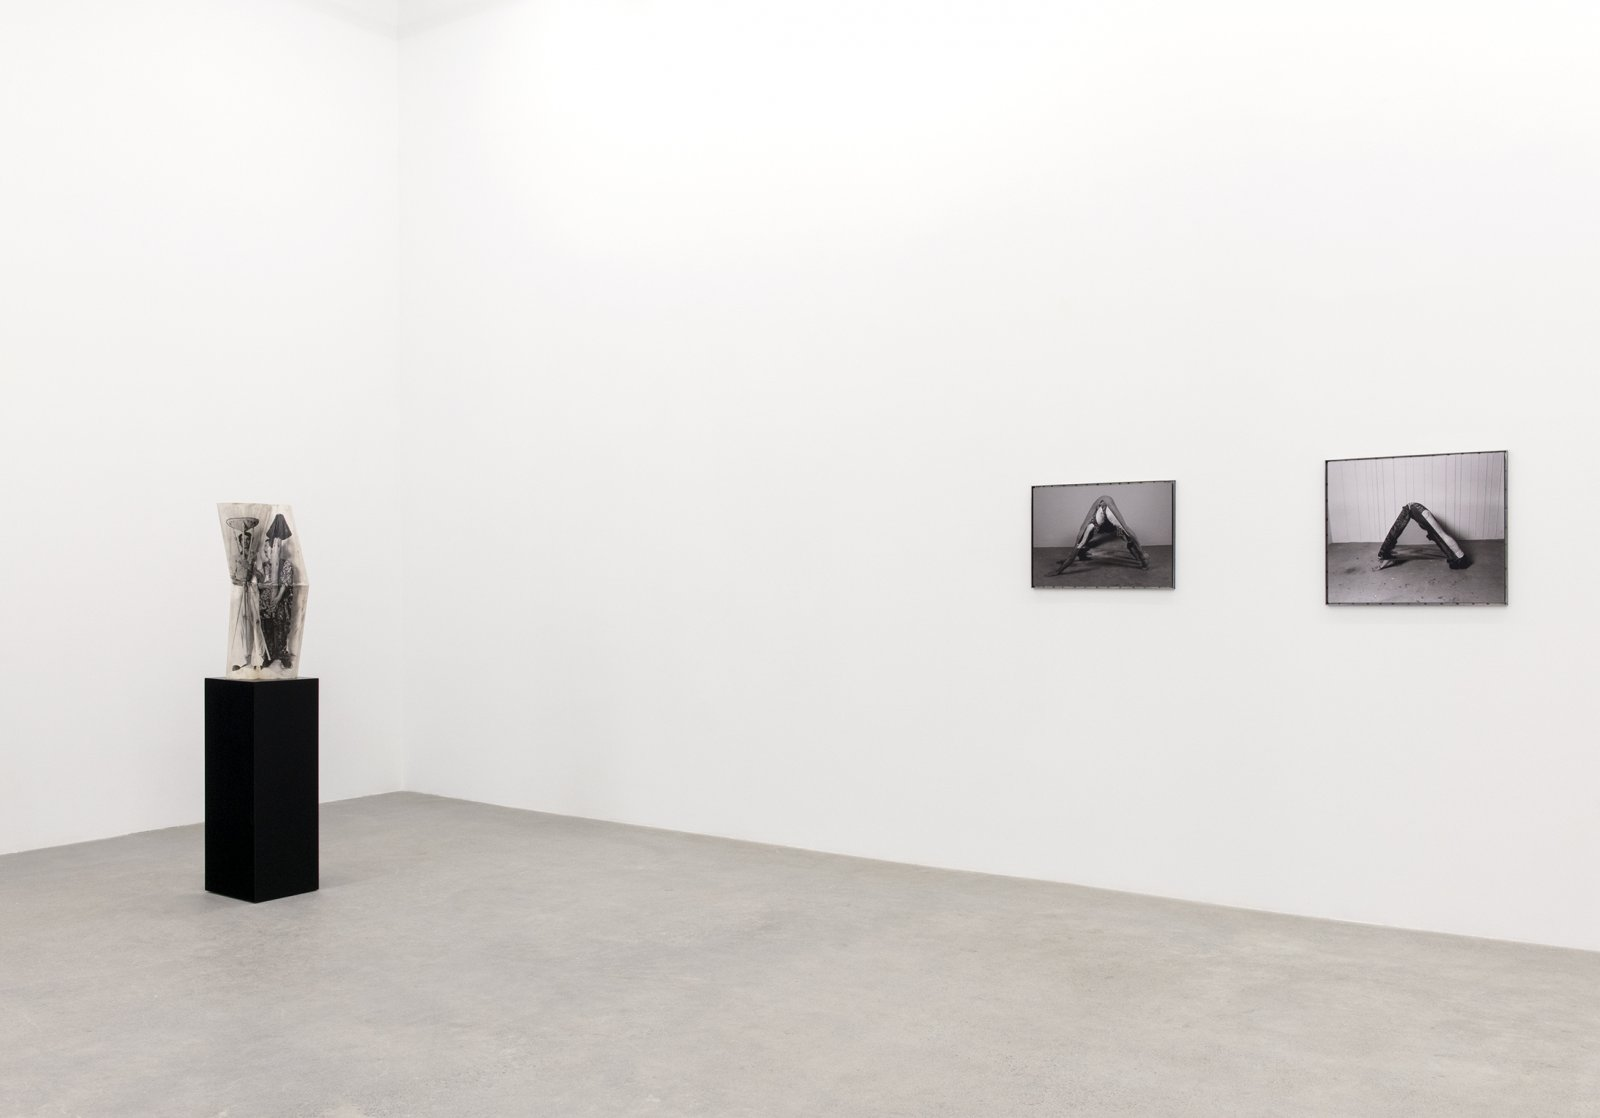 Valérie Blass, installation view, To only ever say the same thing forever the same thing, Catriona Jeffries, 2015-2016 by Valérie Blass